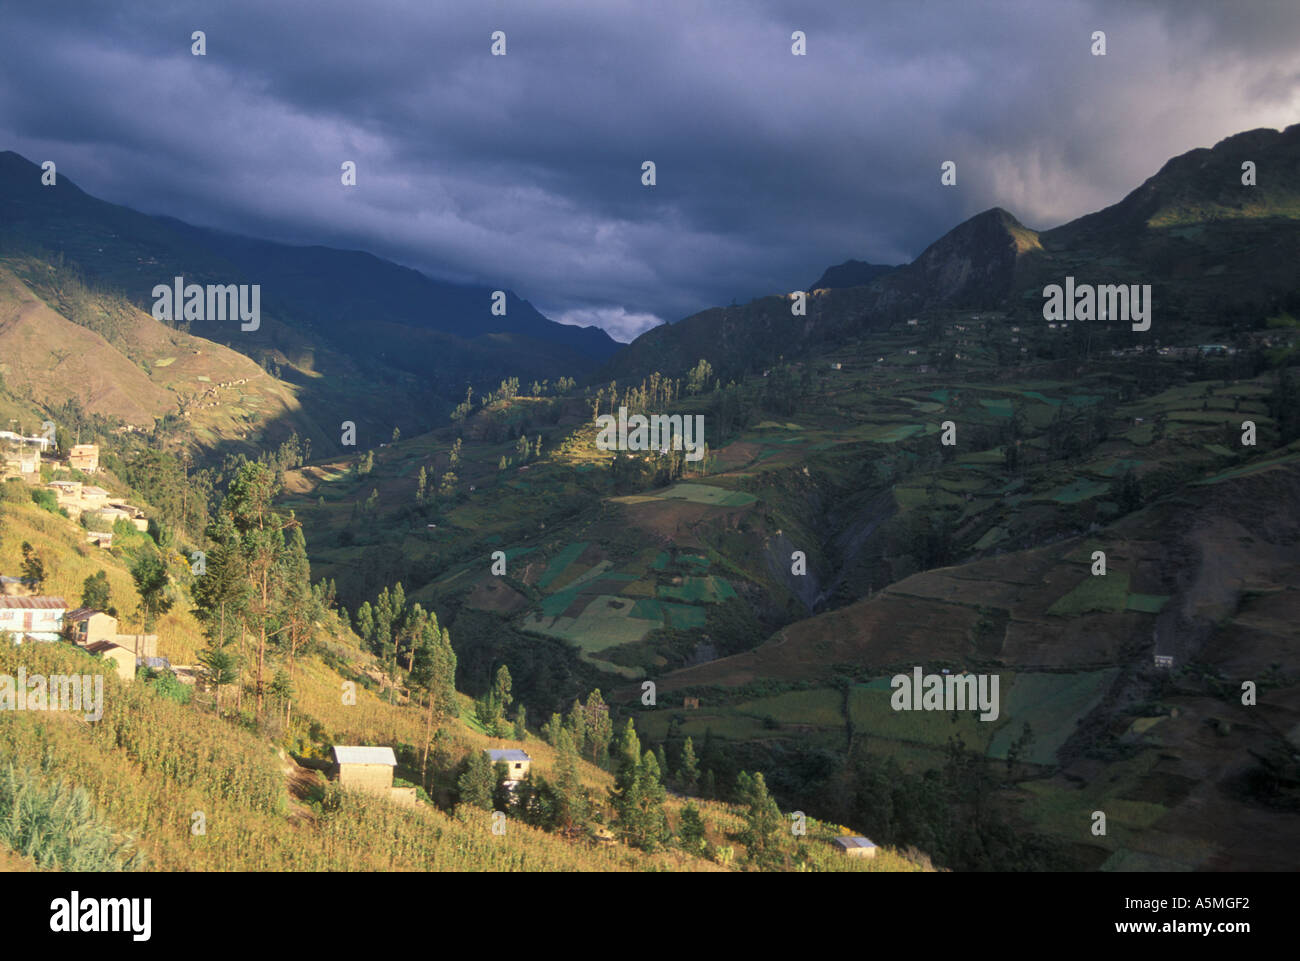 Agricultural land on mountain slopes abover2000 meters at Sorata Yungas region Cordillera real Andes mountains Bolivia - Stock Image